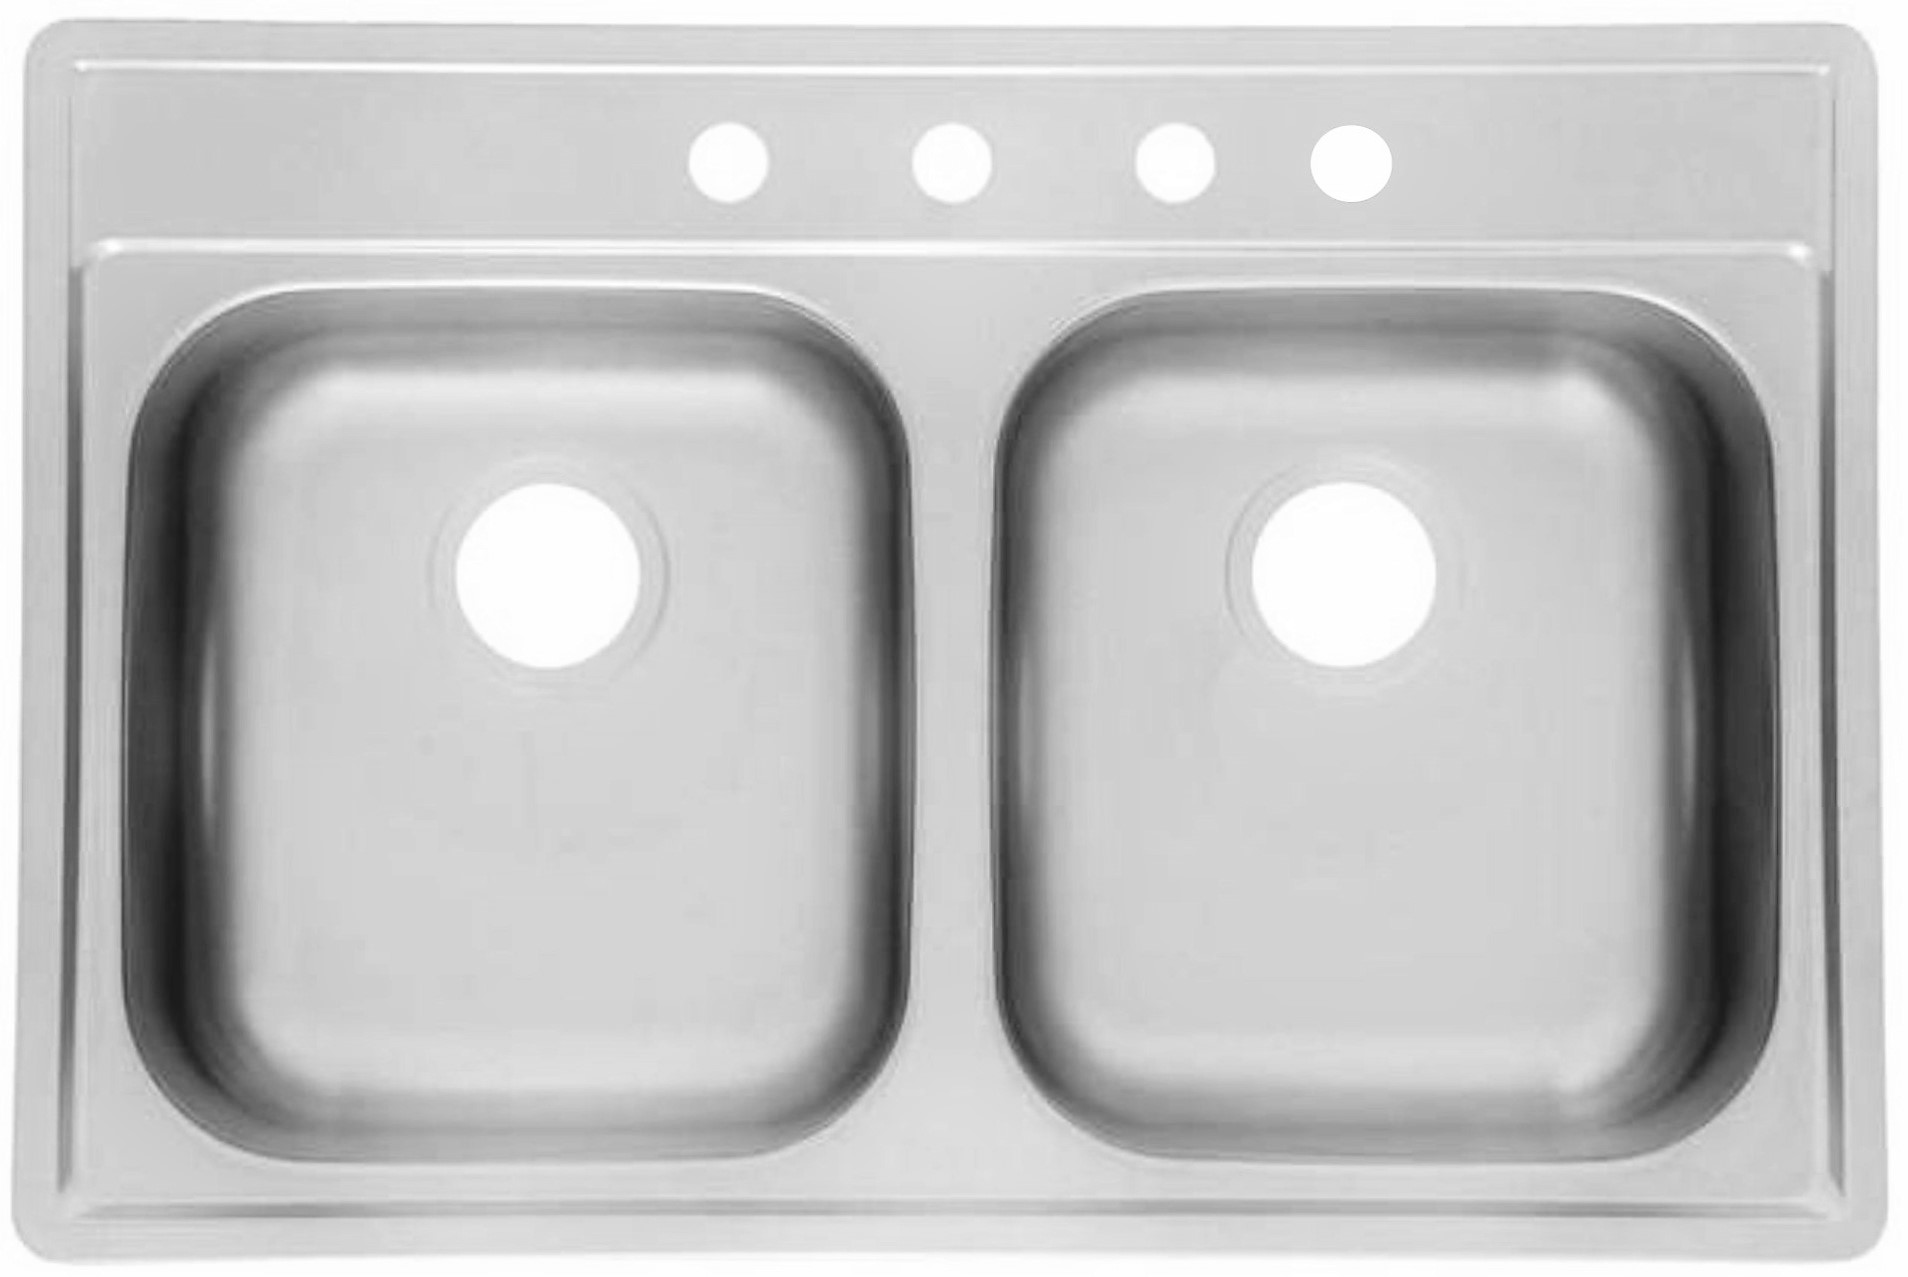 stainless steel kitchen sinks 33 x 22 cabinets buffalo ny as1276 quot 6 18g double bowl topmount economy